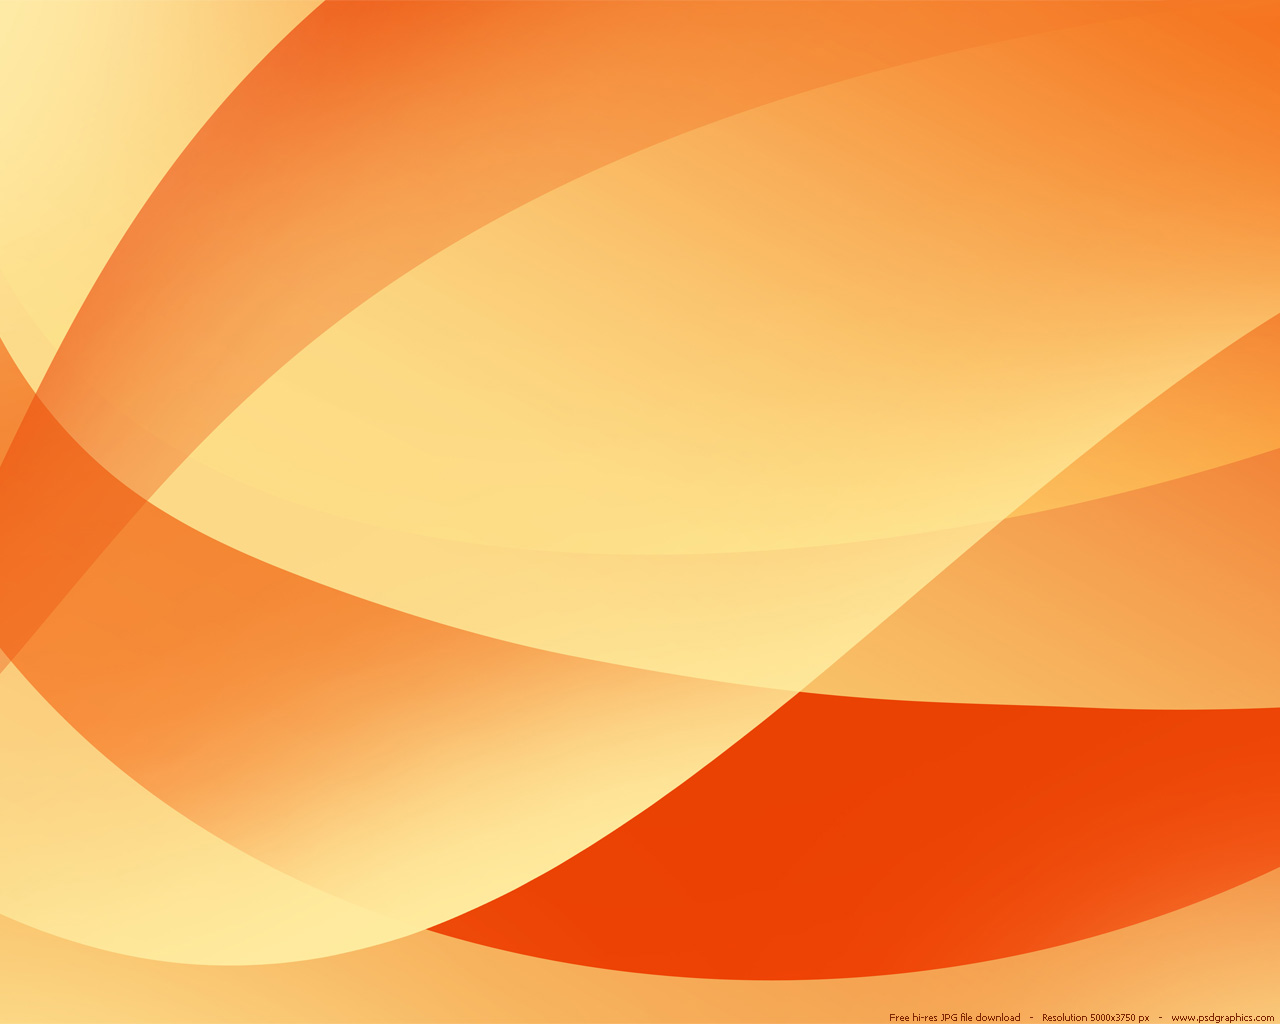 abstract orange wallpapers wallpaperjpg - photo #7